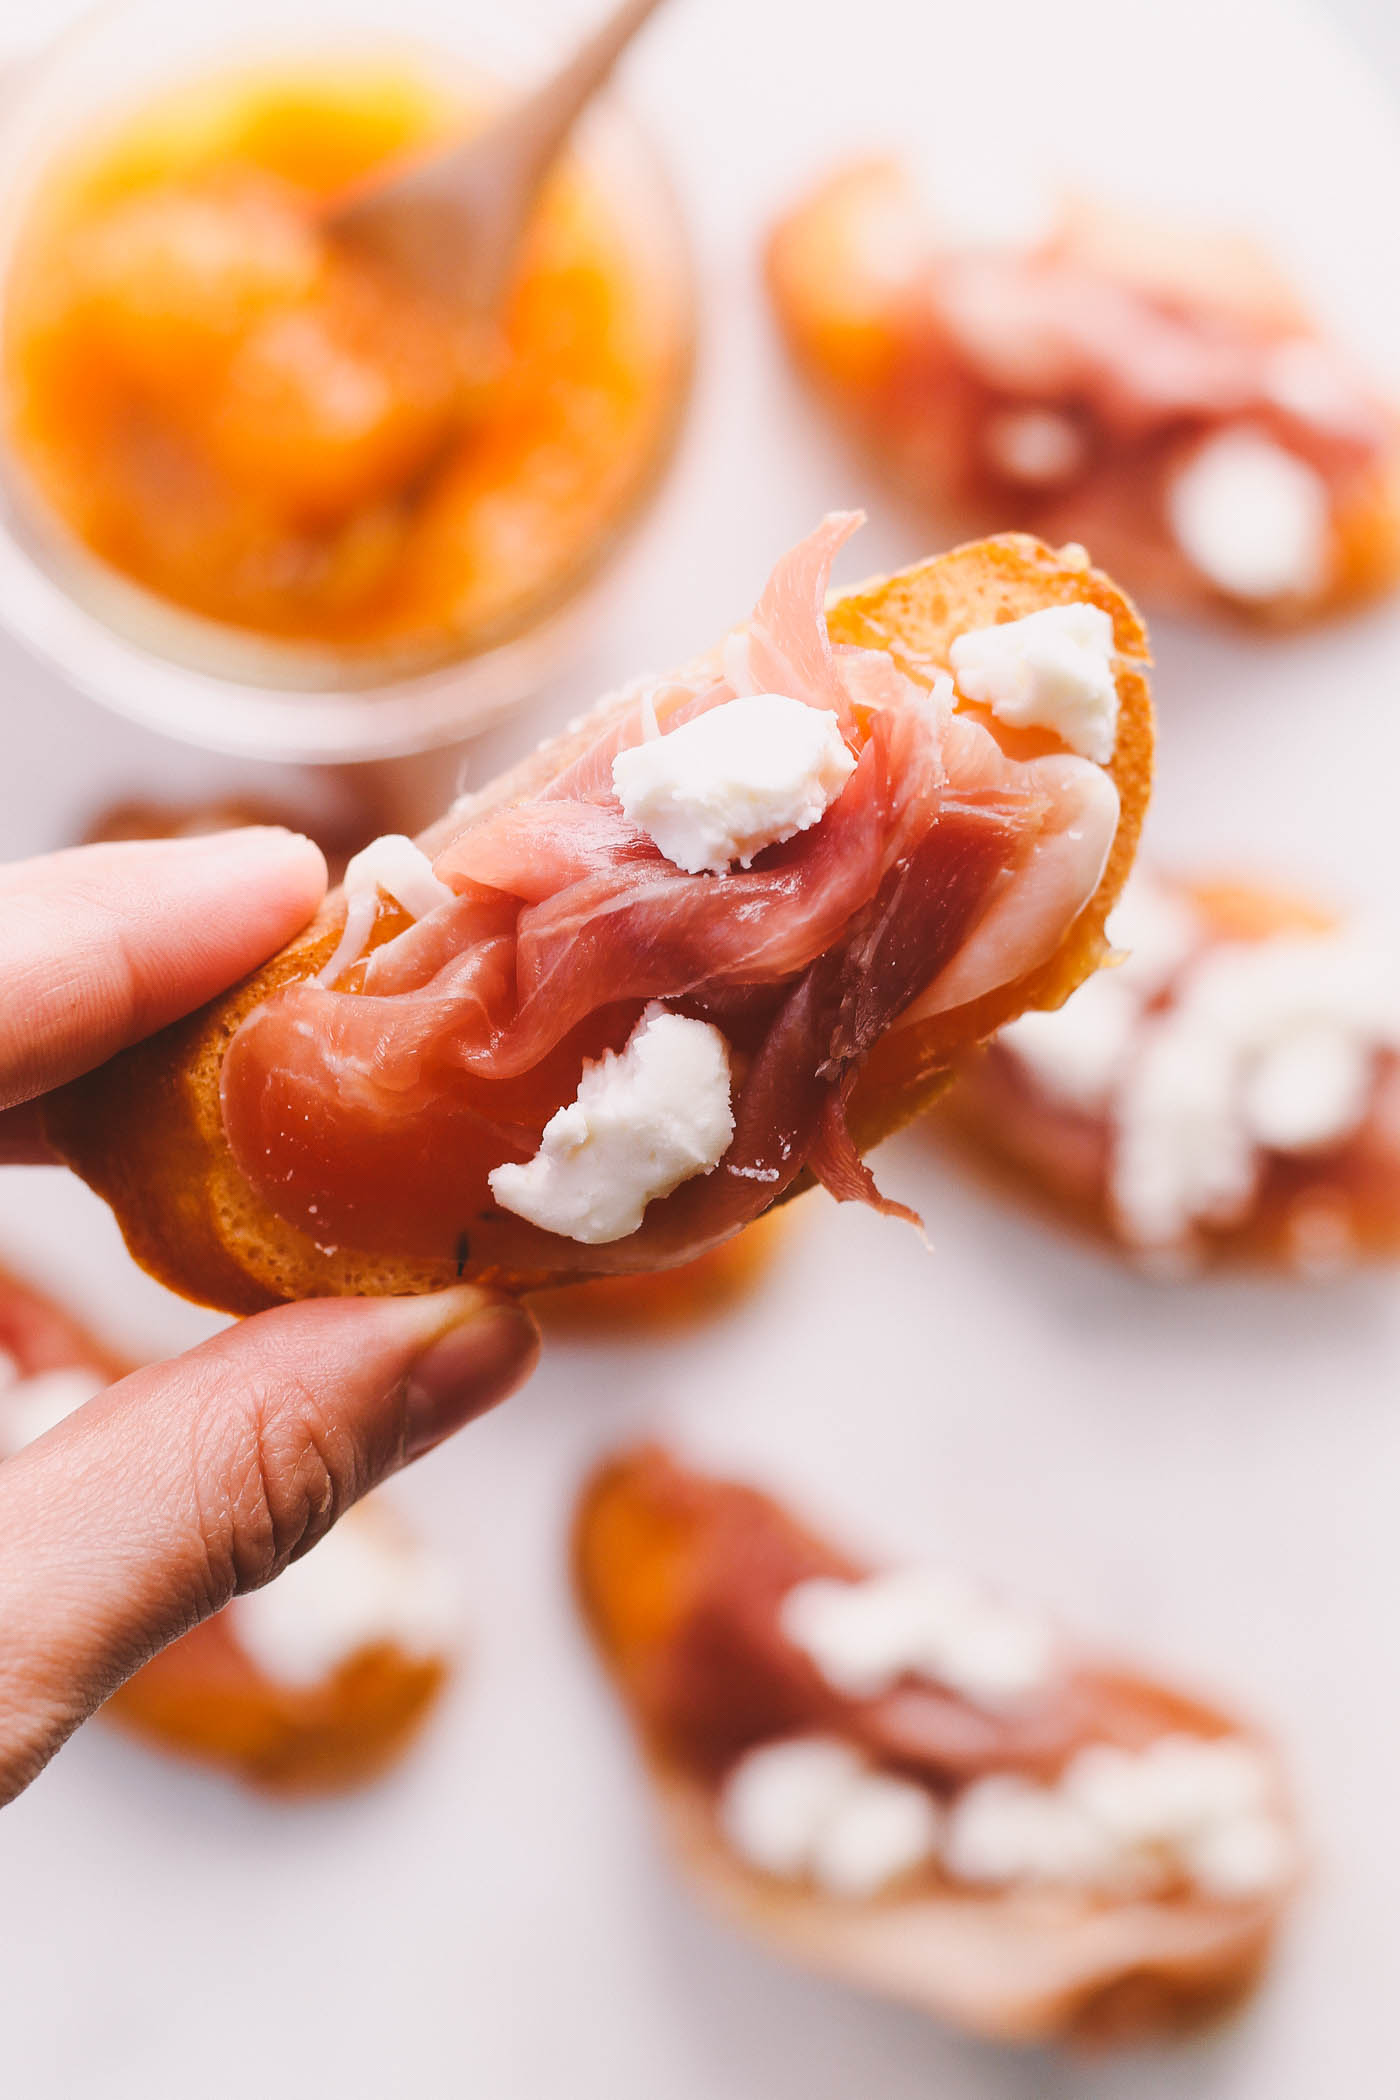 simple homemade crostini topped with salty prosciutto, tangy goat cheese, & an easy homemade cantaloupe & honey jam. these 4-ingredient crostini are just as simple as they are elegant. perfect to serve as an appetizer at your next dinner party or to bring along with you to any summer parties you have this year! | appetizer recipe, easy appetizer, appetizer idea, dinner party, summer recipe, easy entertaining, girls night, date night, crostini, cantaloupe |